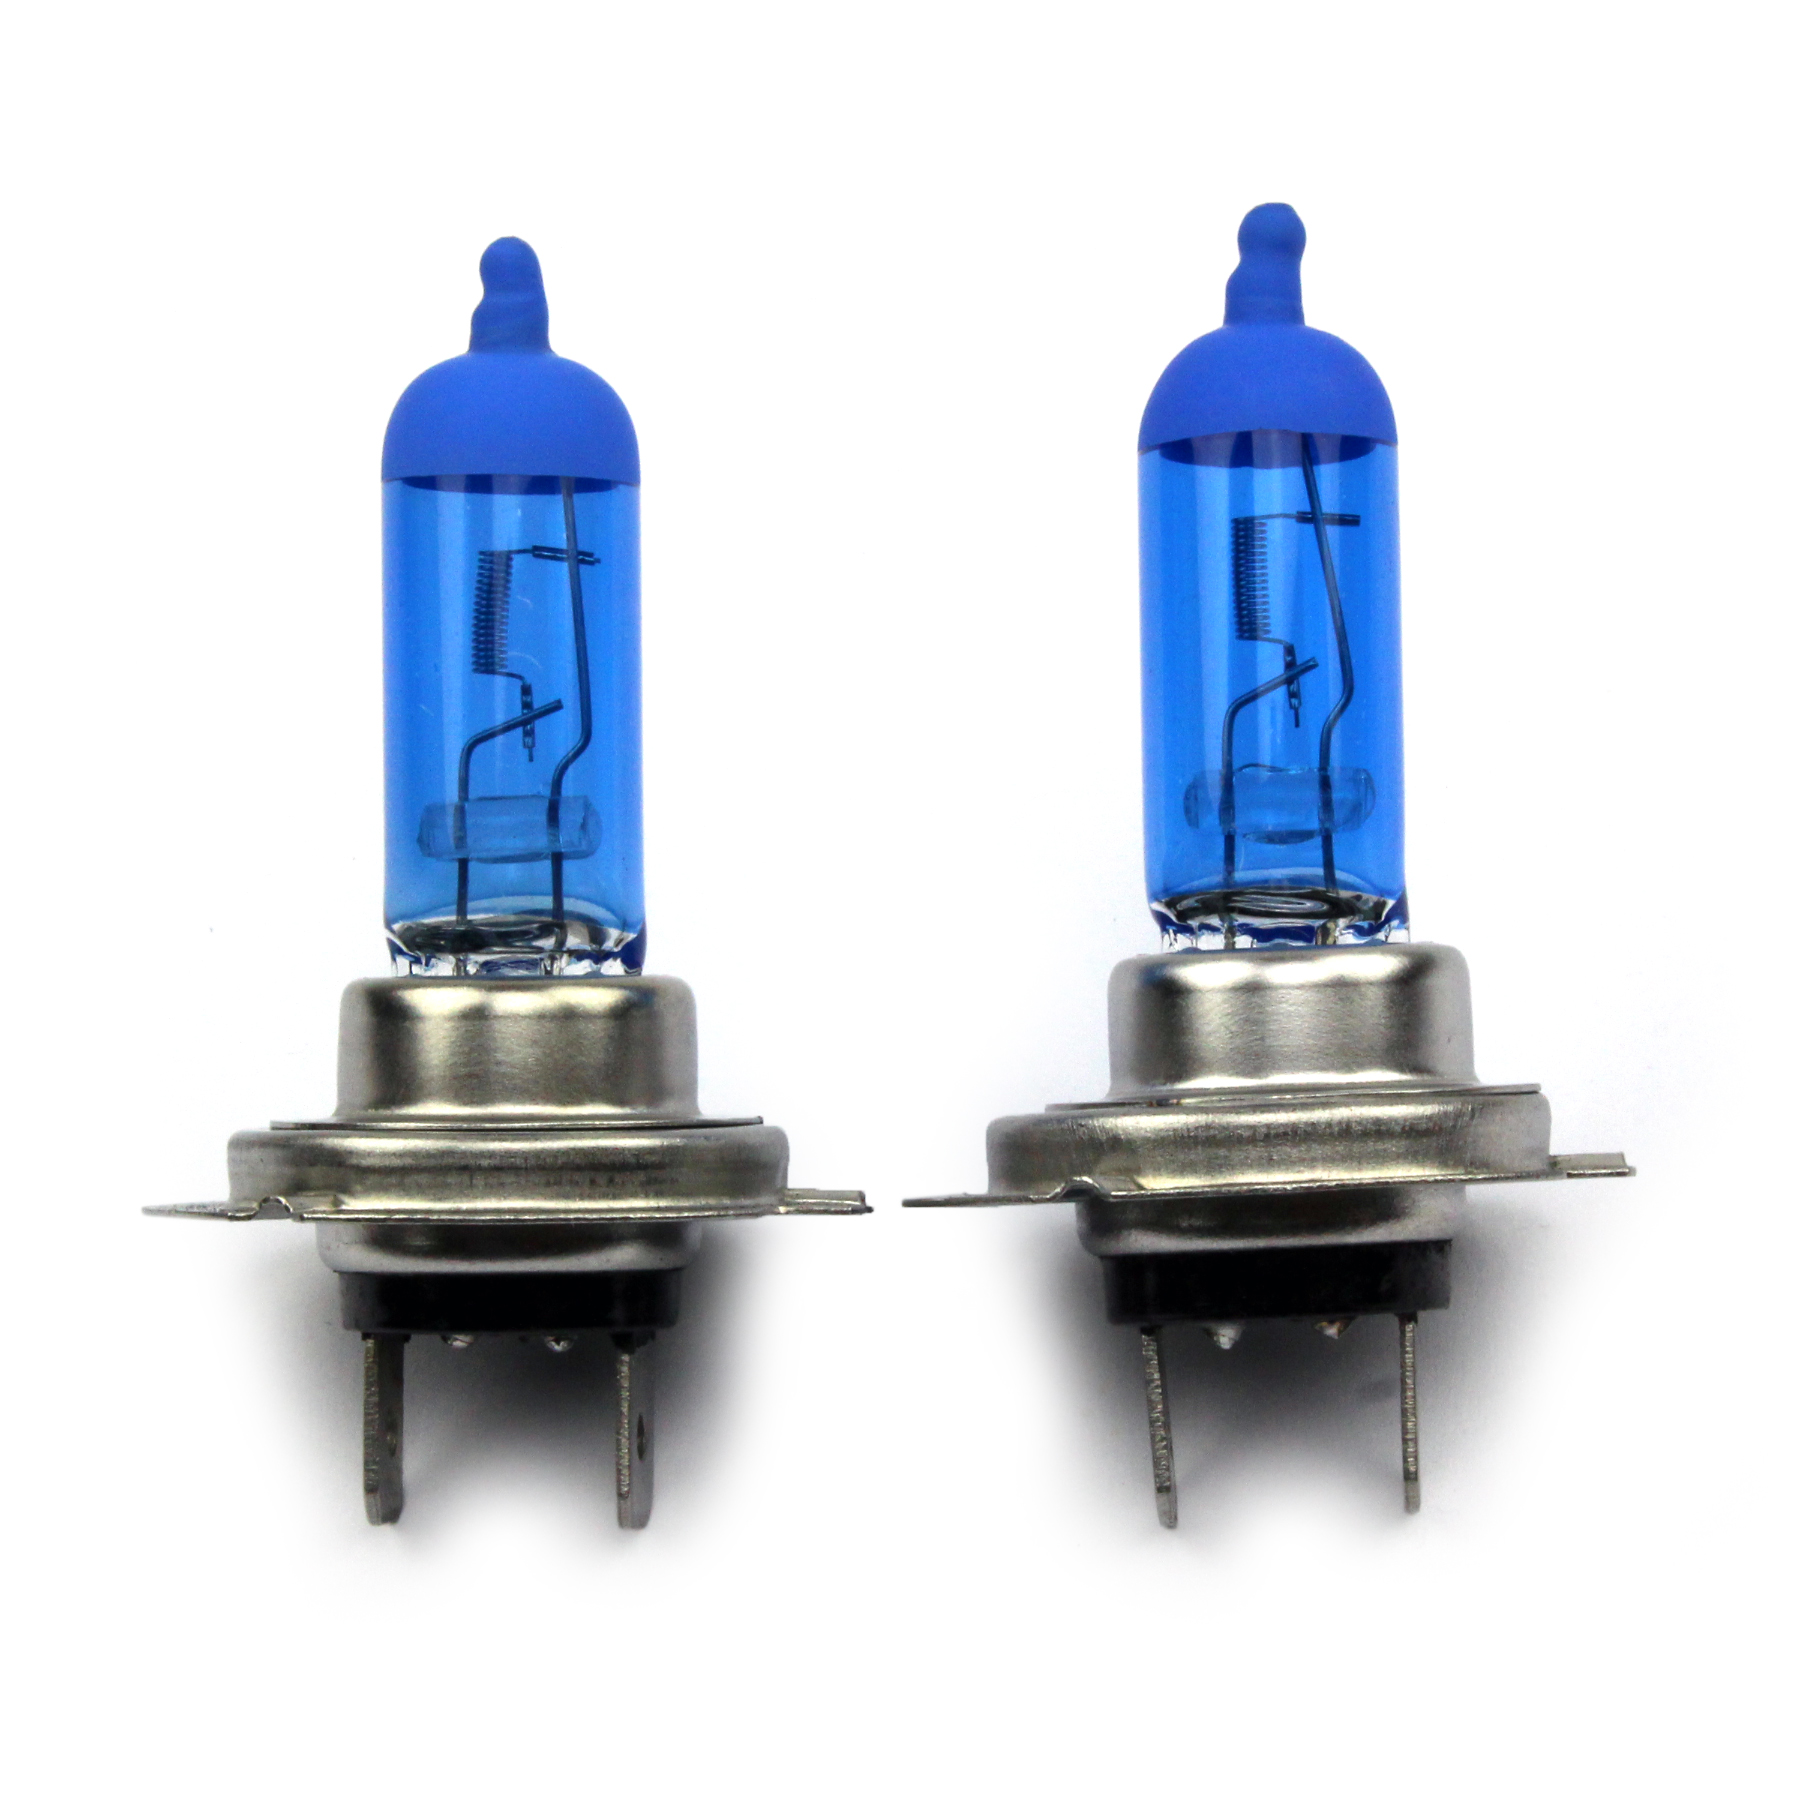 2 x h7 55w blue xenon halogen temperatur 8500k. Black Bedroom Furniture Sets. Home Design Ideas